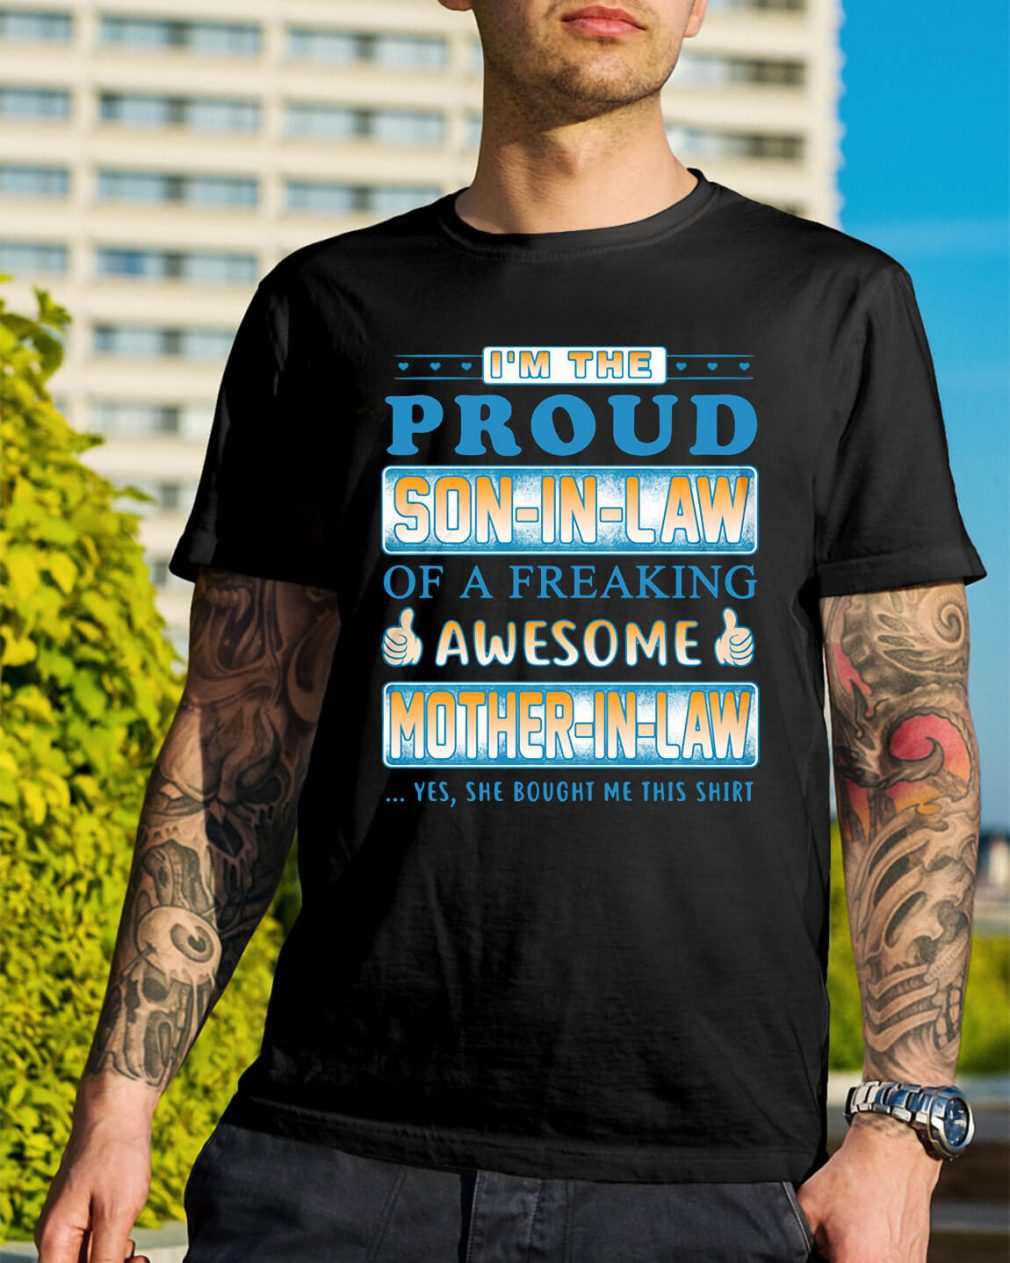 I'm the proud son-in-law of a freaking awesome mother-in-law shirt